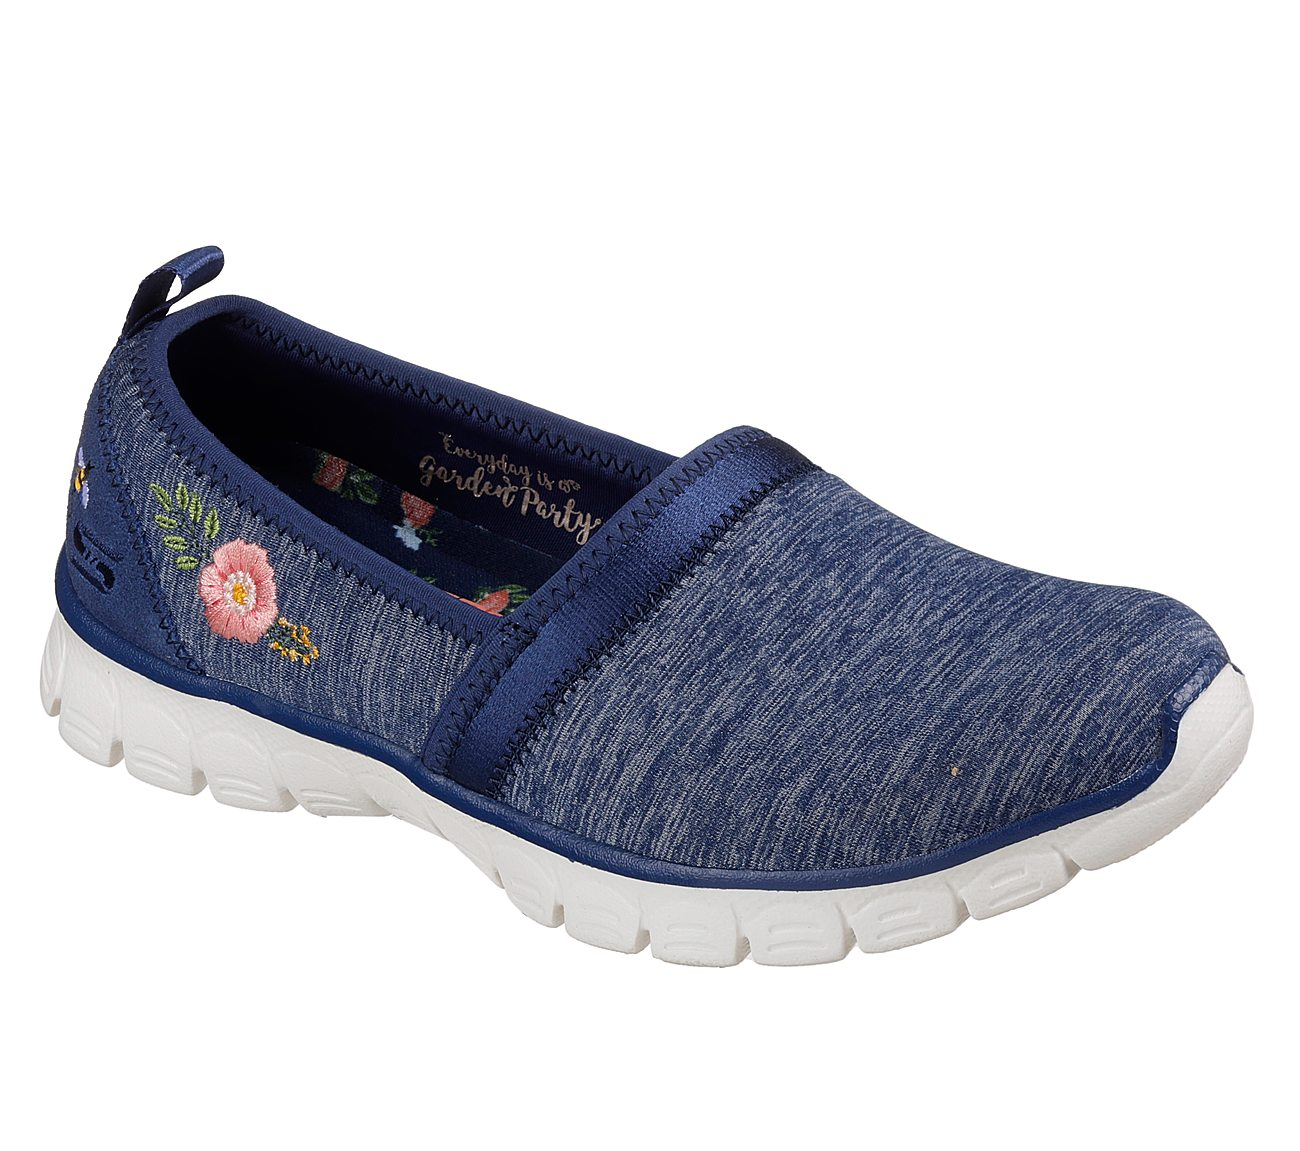 NEW SKECHERS WOMENS EZ FLEX 3.0 SWEET GARDEN SLIP-ON SNEAKER